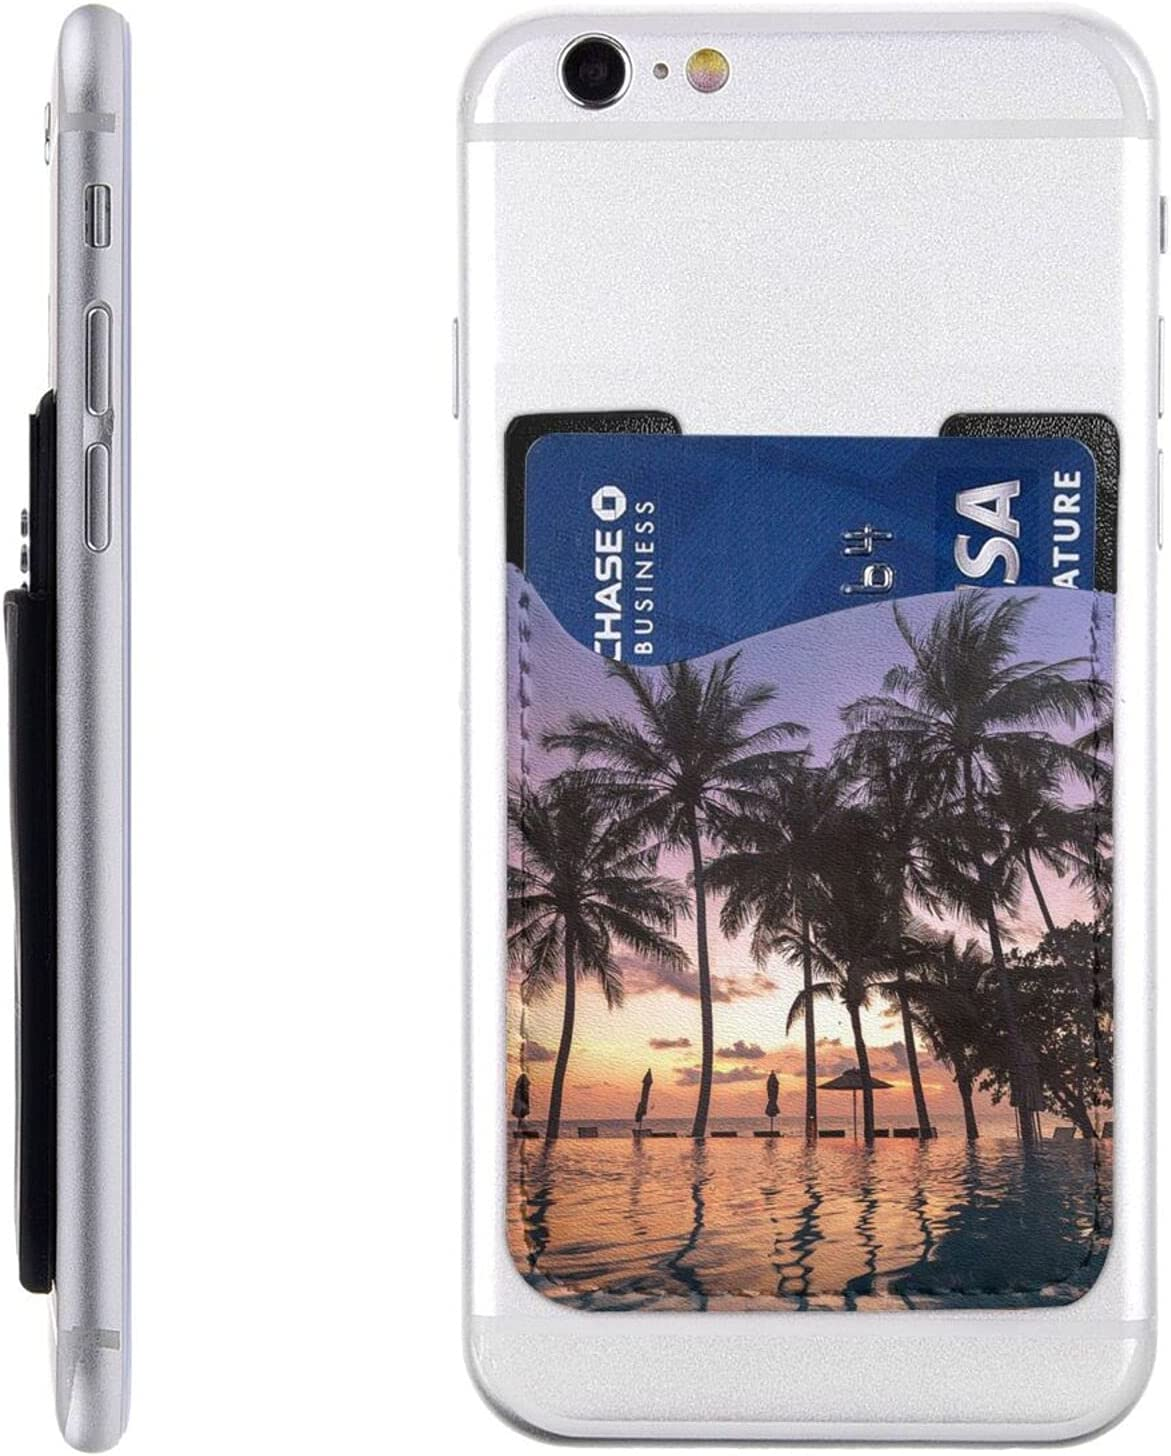 High quality new Palm Tree Phone Baltimore Mall Card Holder On Cell Stick Slee Wallet